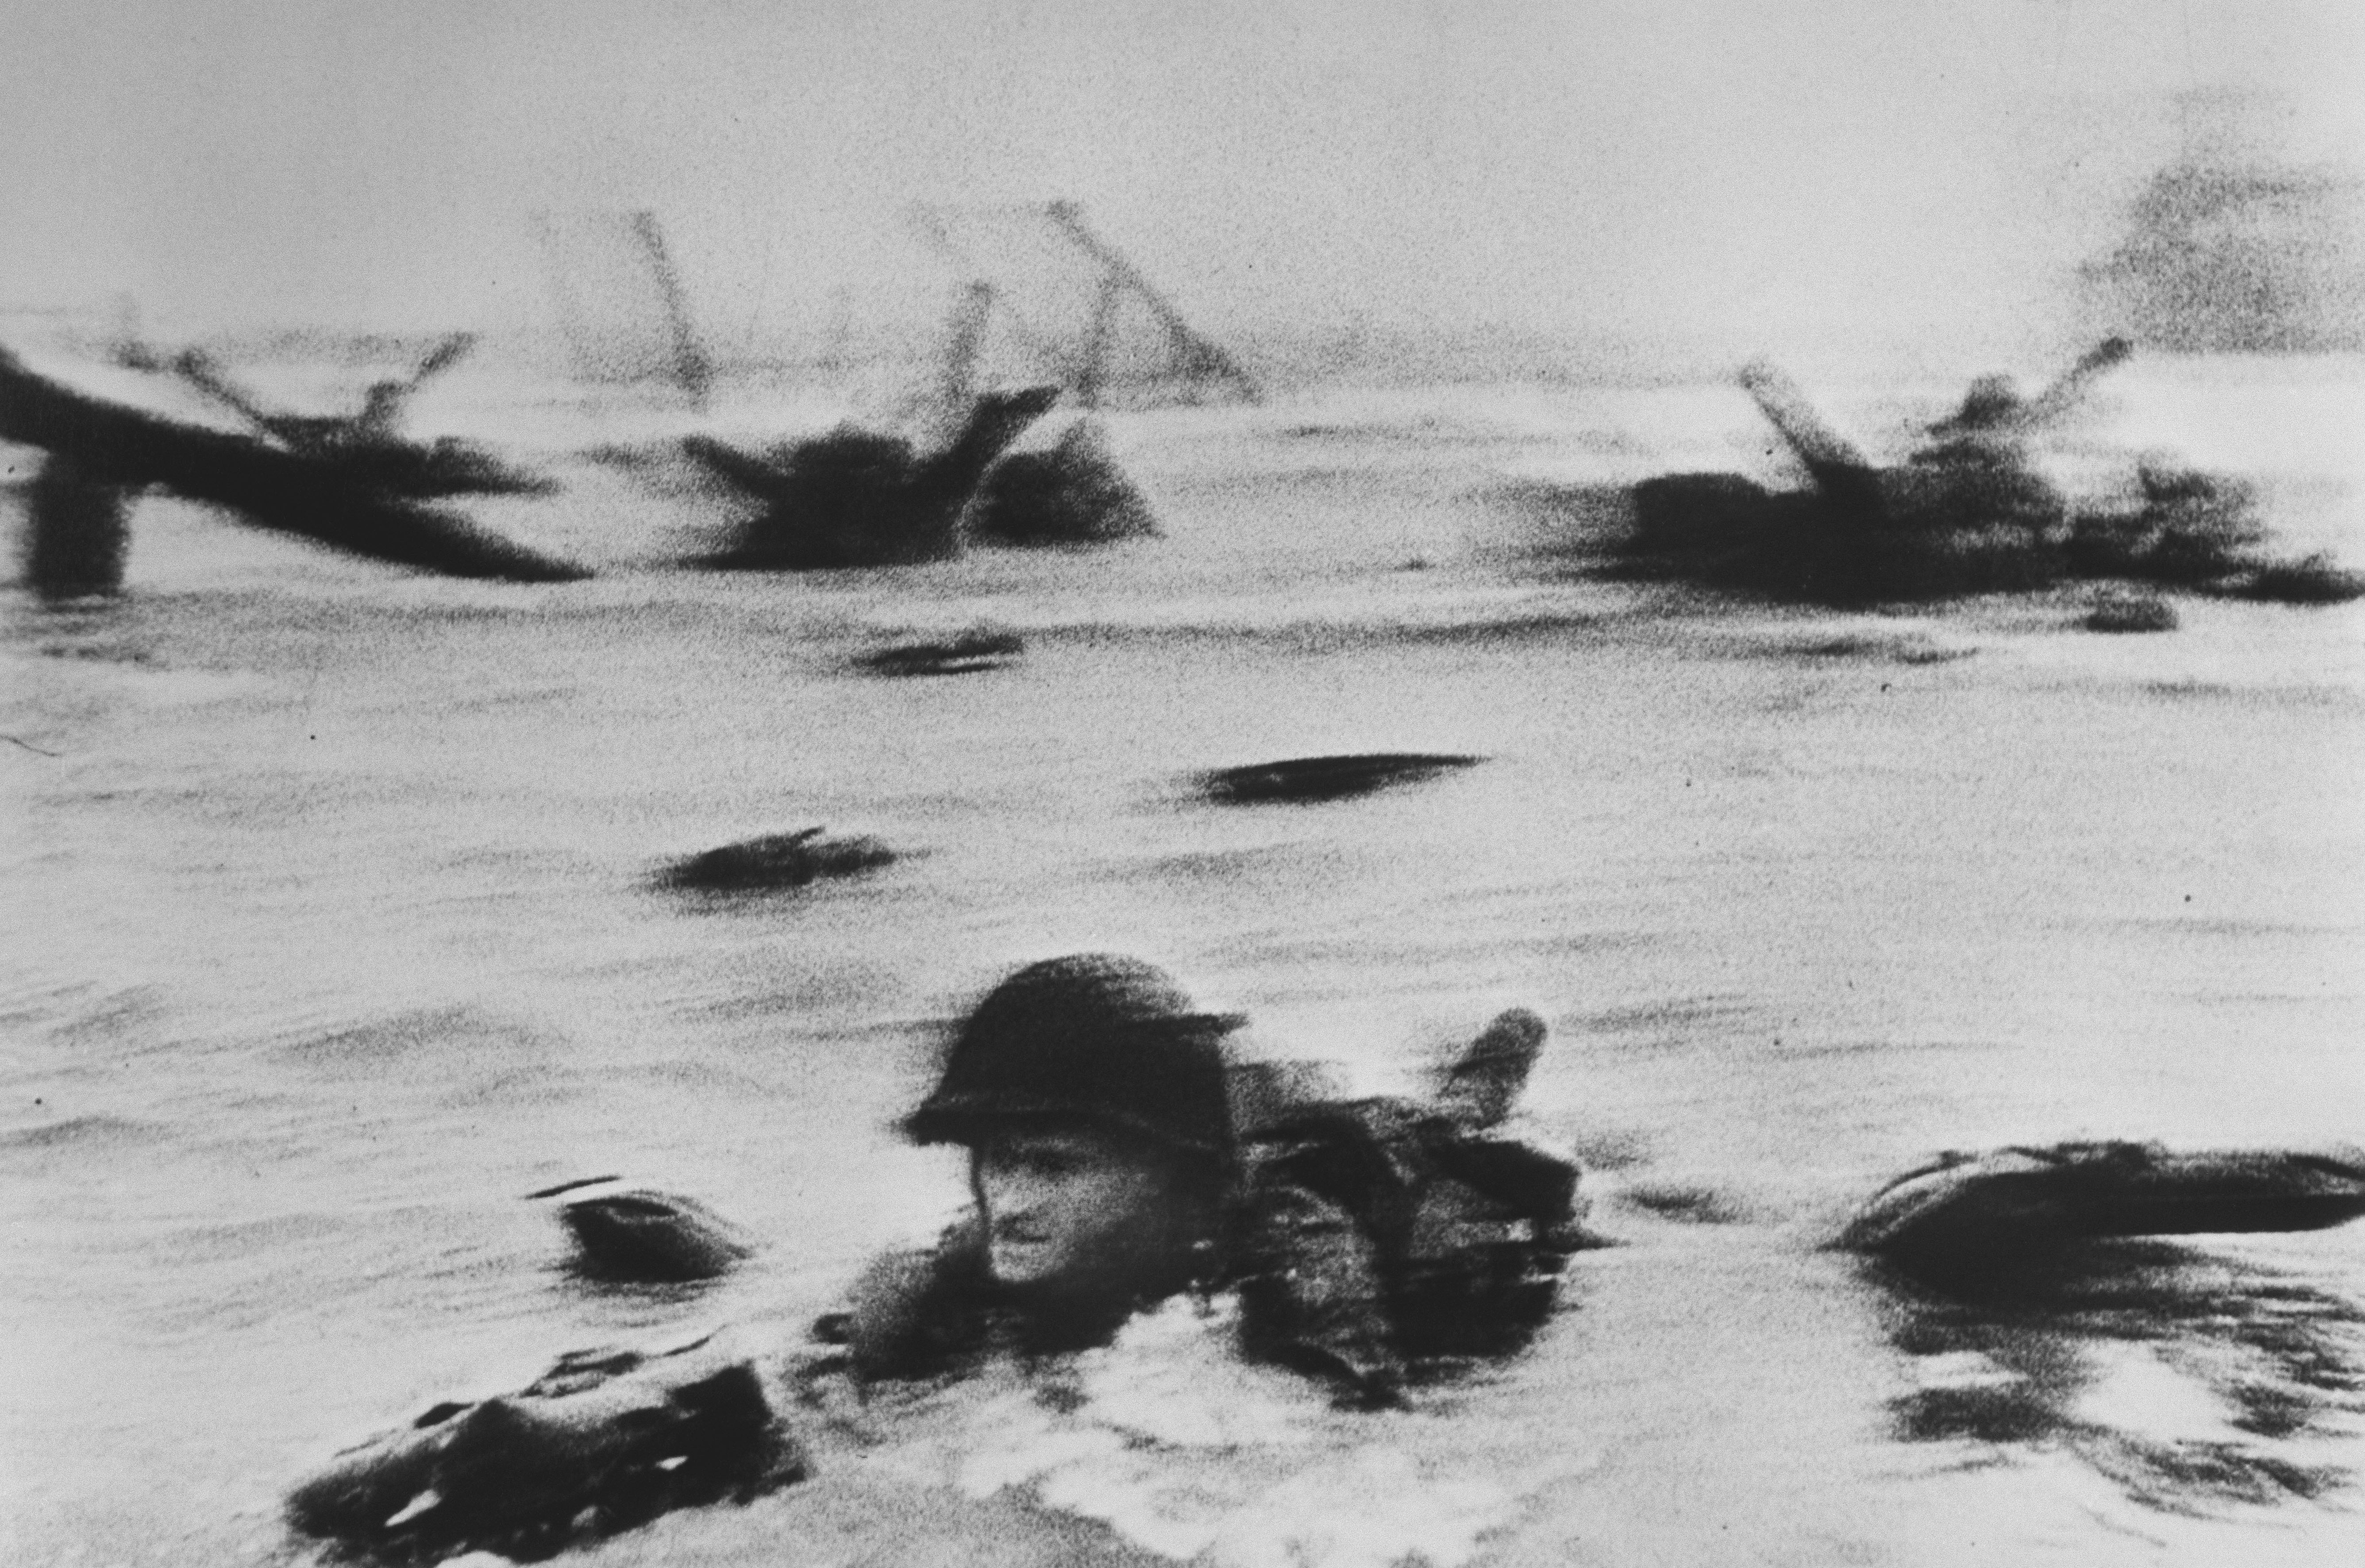 [American troops landing on Omaha Beach, D-Day, Normandy, France], June 6th, 1944